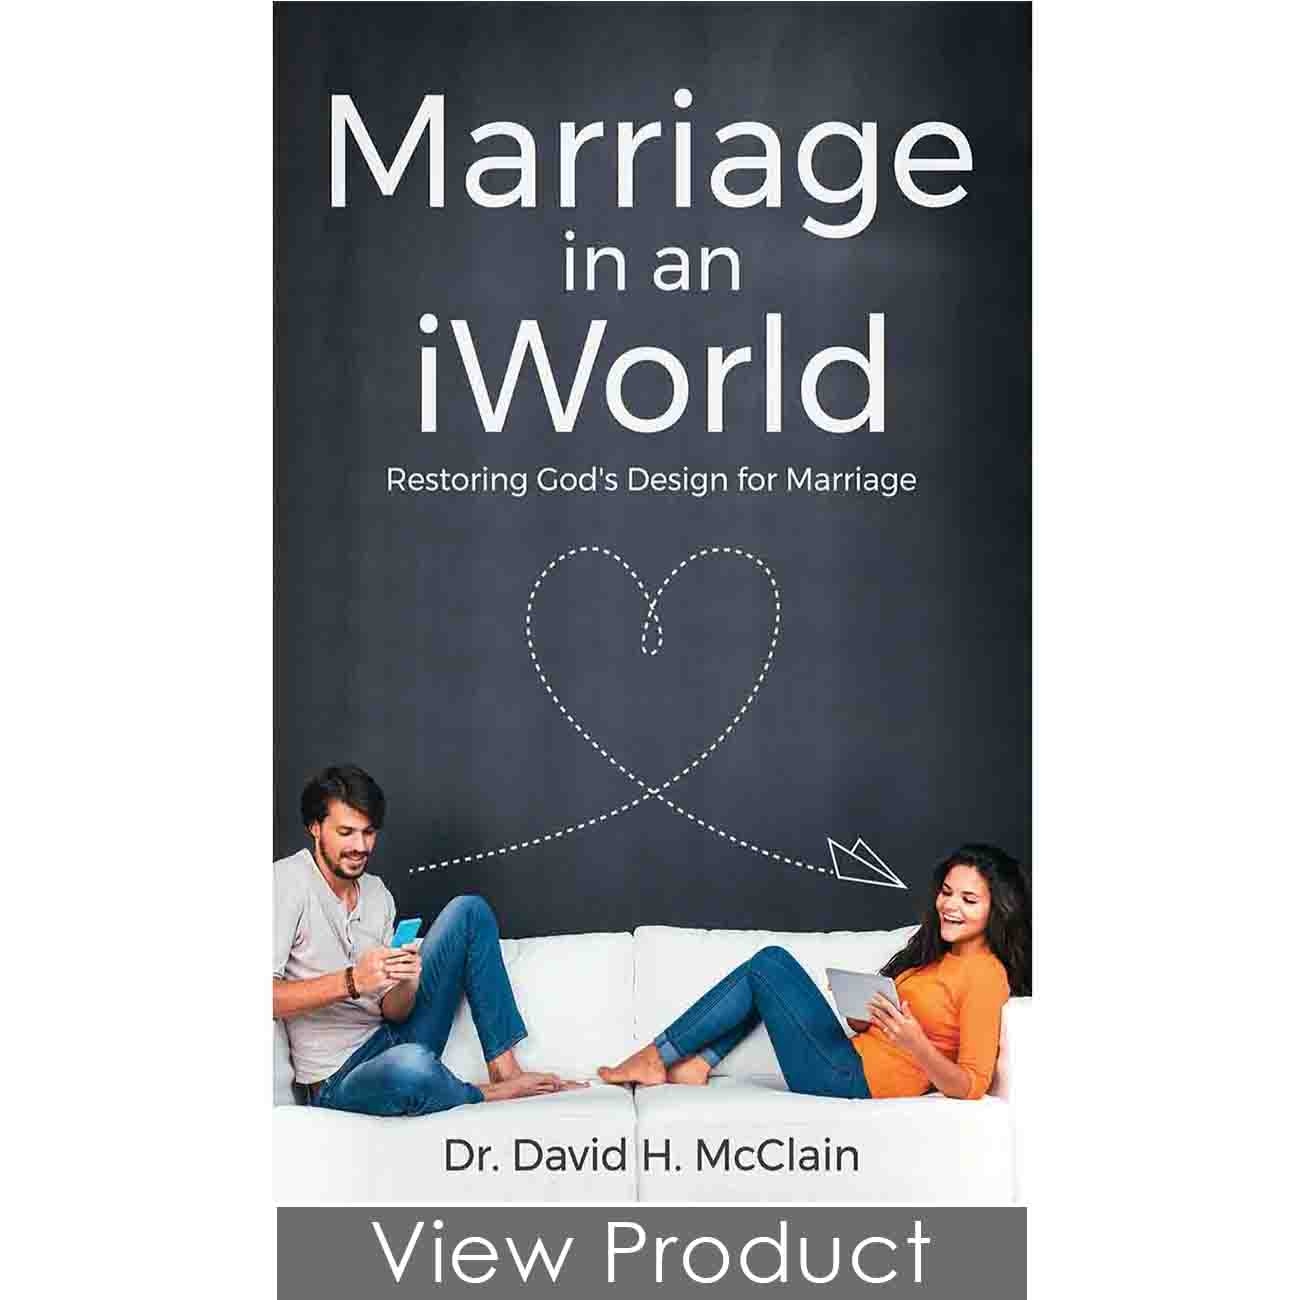 Marriage in an iWorld